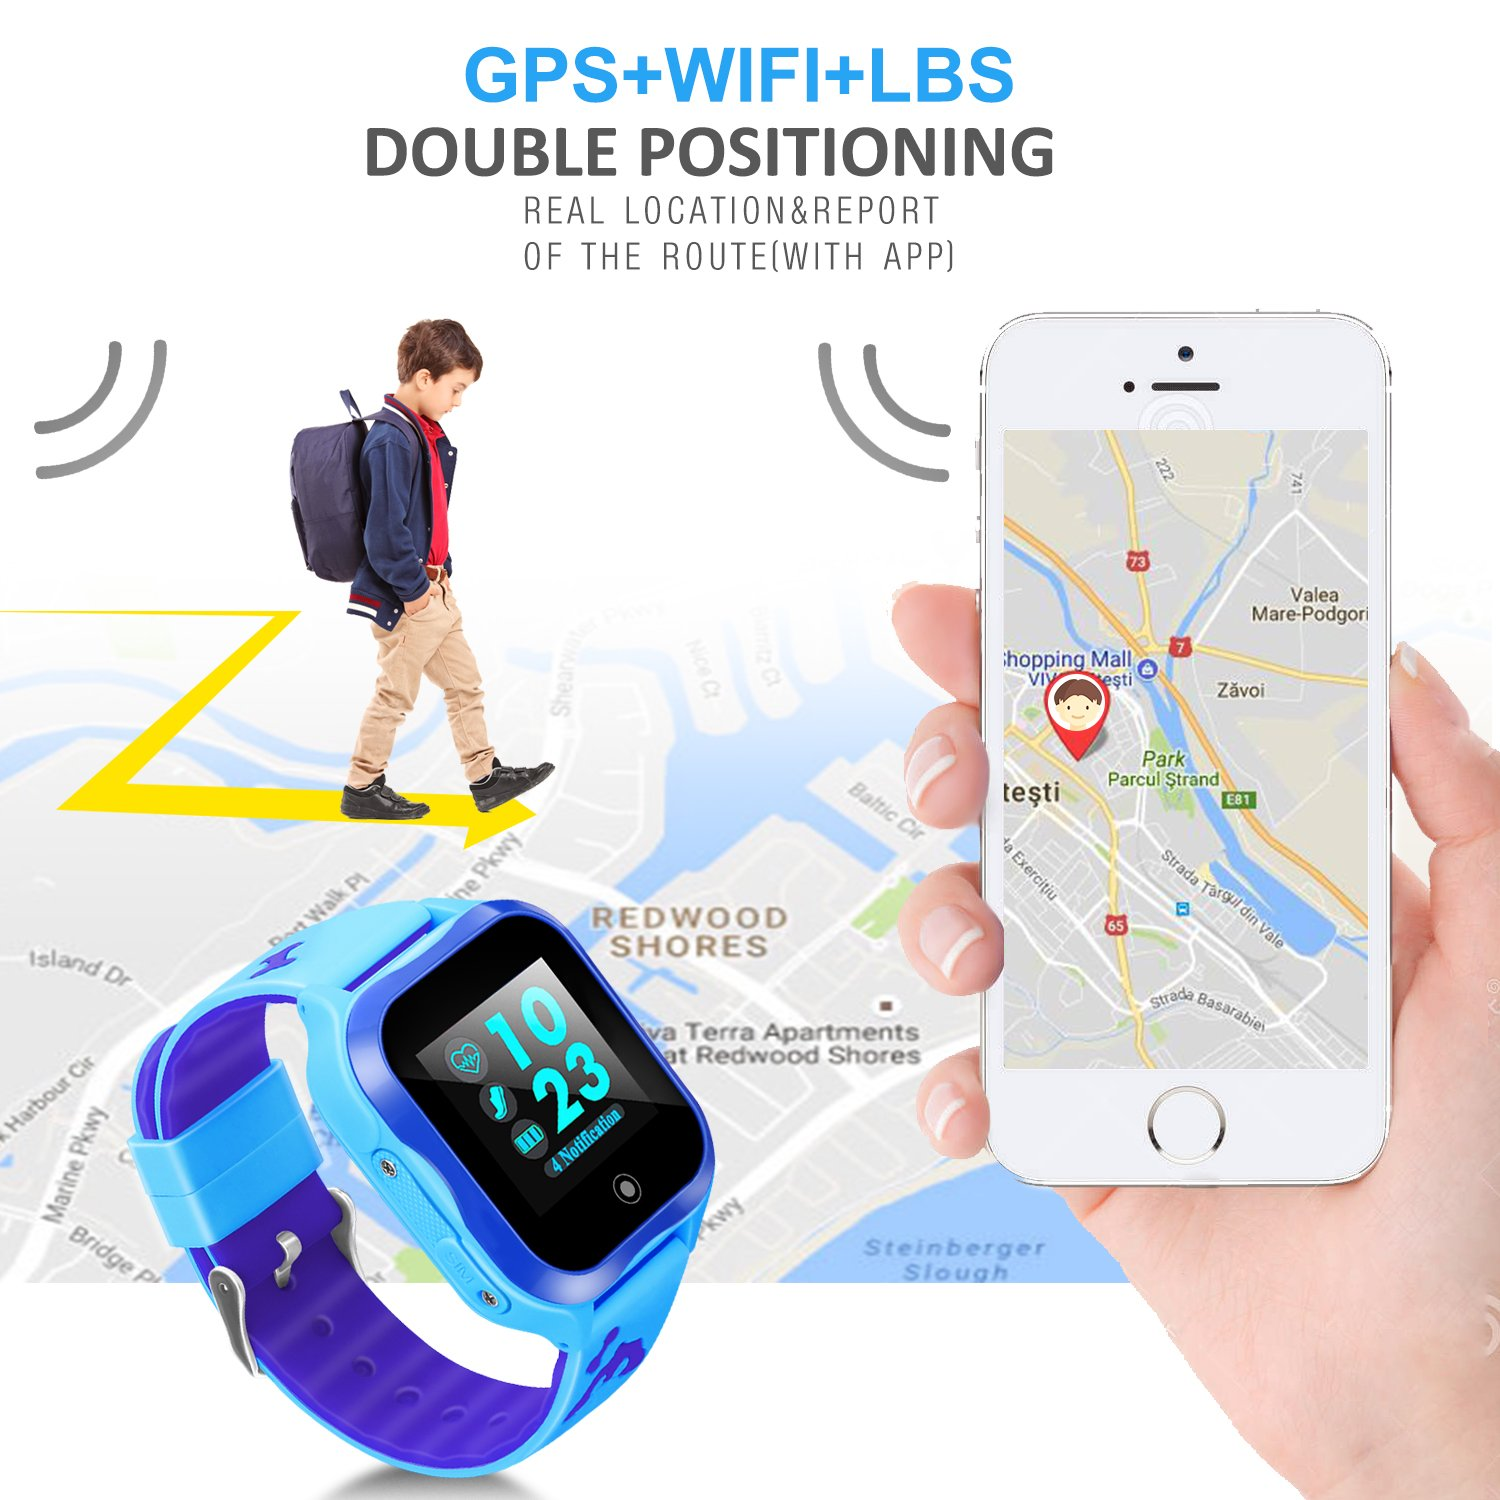 LJRYCQSSZSF Kids Smart Watch Phone GPS Tracker Ip67 Waterproof Kids Smartwatches Age 3-15 Boys Girls Touch Screen SIM Slot Educational Toys Phone 1.44 Inch Birthday Gift (Blue) by LJRYCQSSZSF (Image #3)